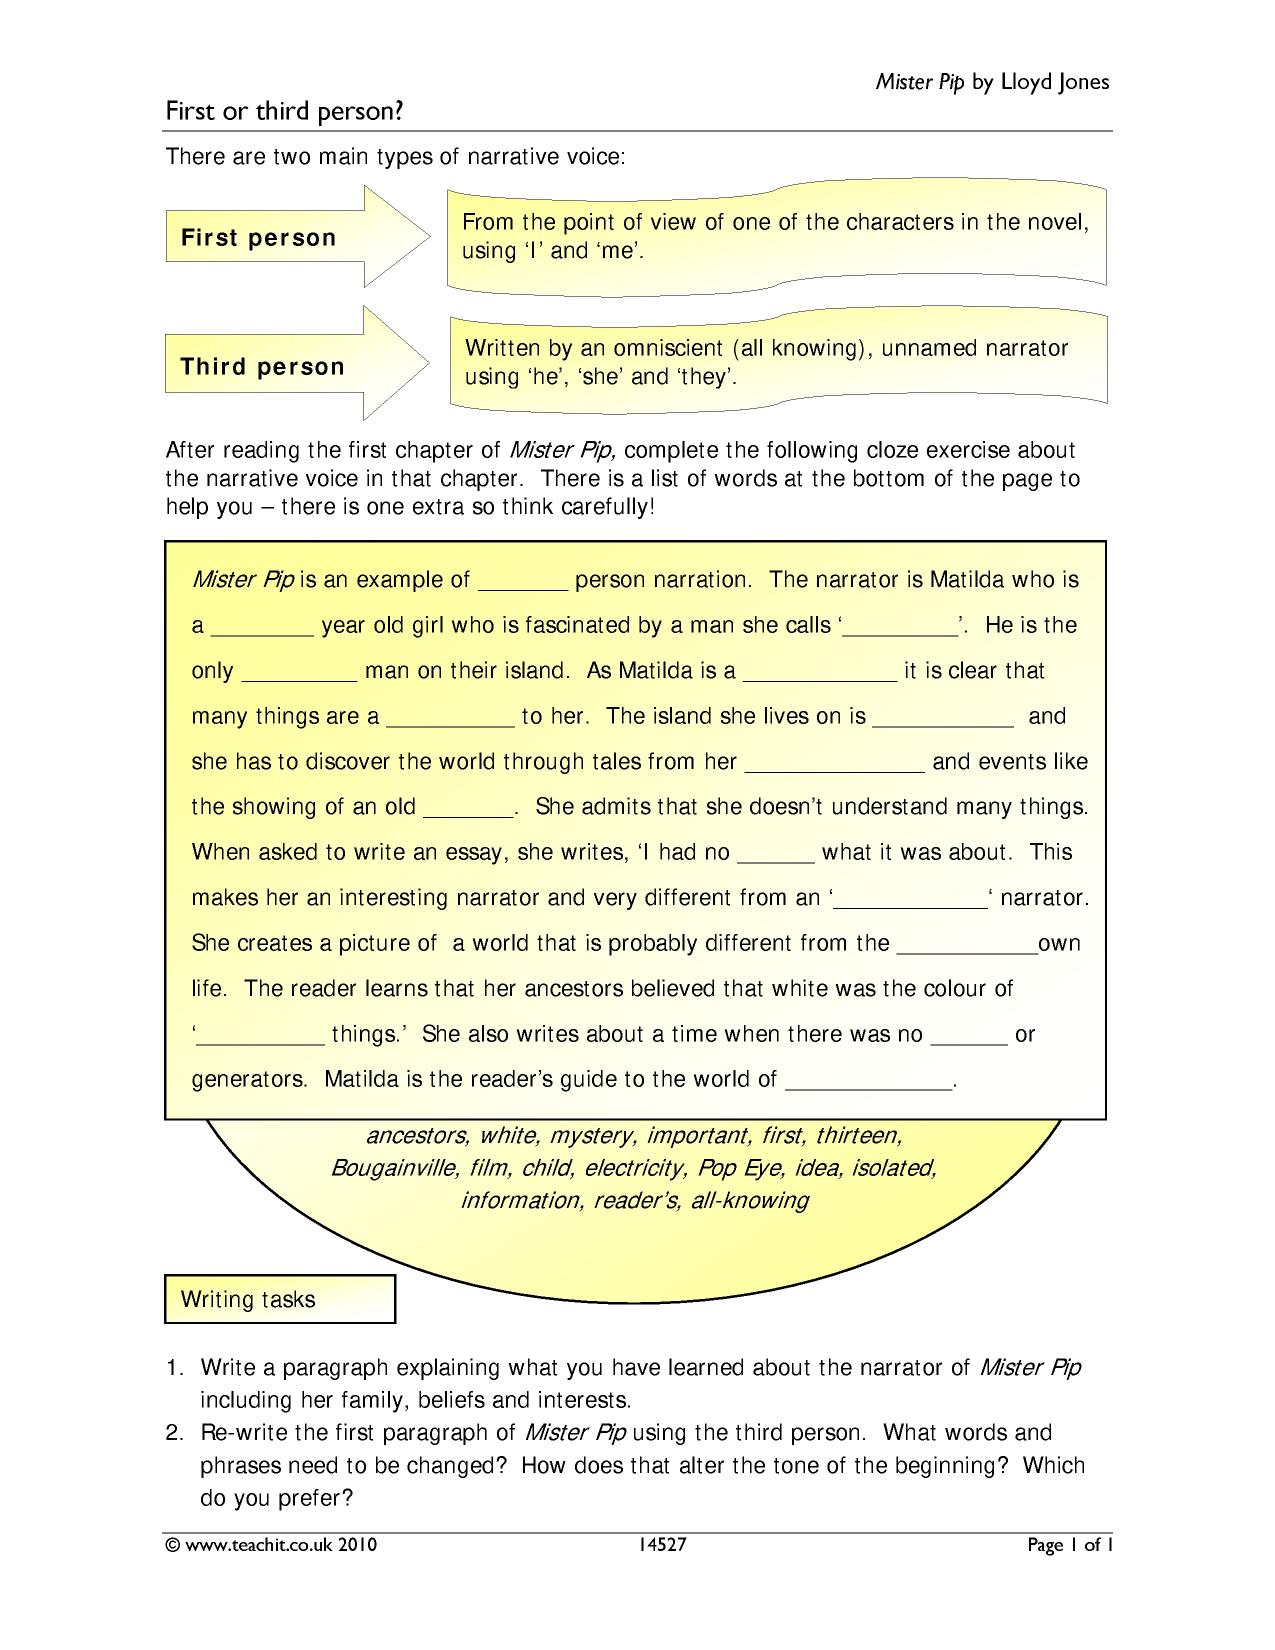 english essay mr pip Start studying mister pip essay (plan 1) learn vocabulary, terms, and more with flashcards, games, and other study tools.